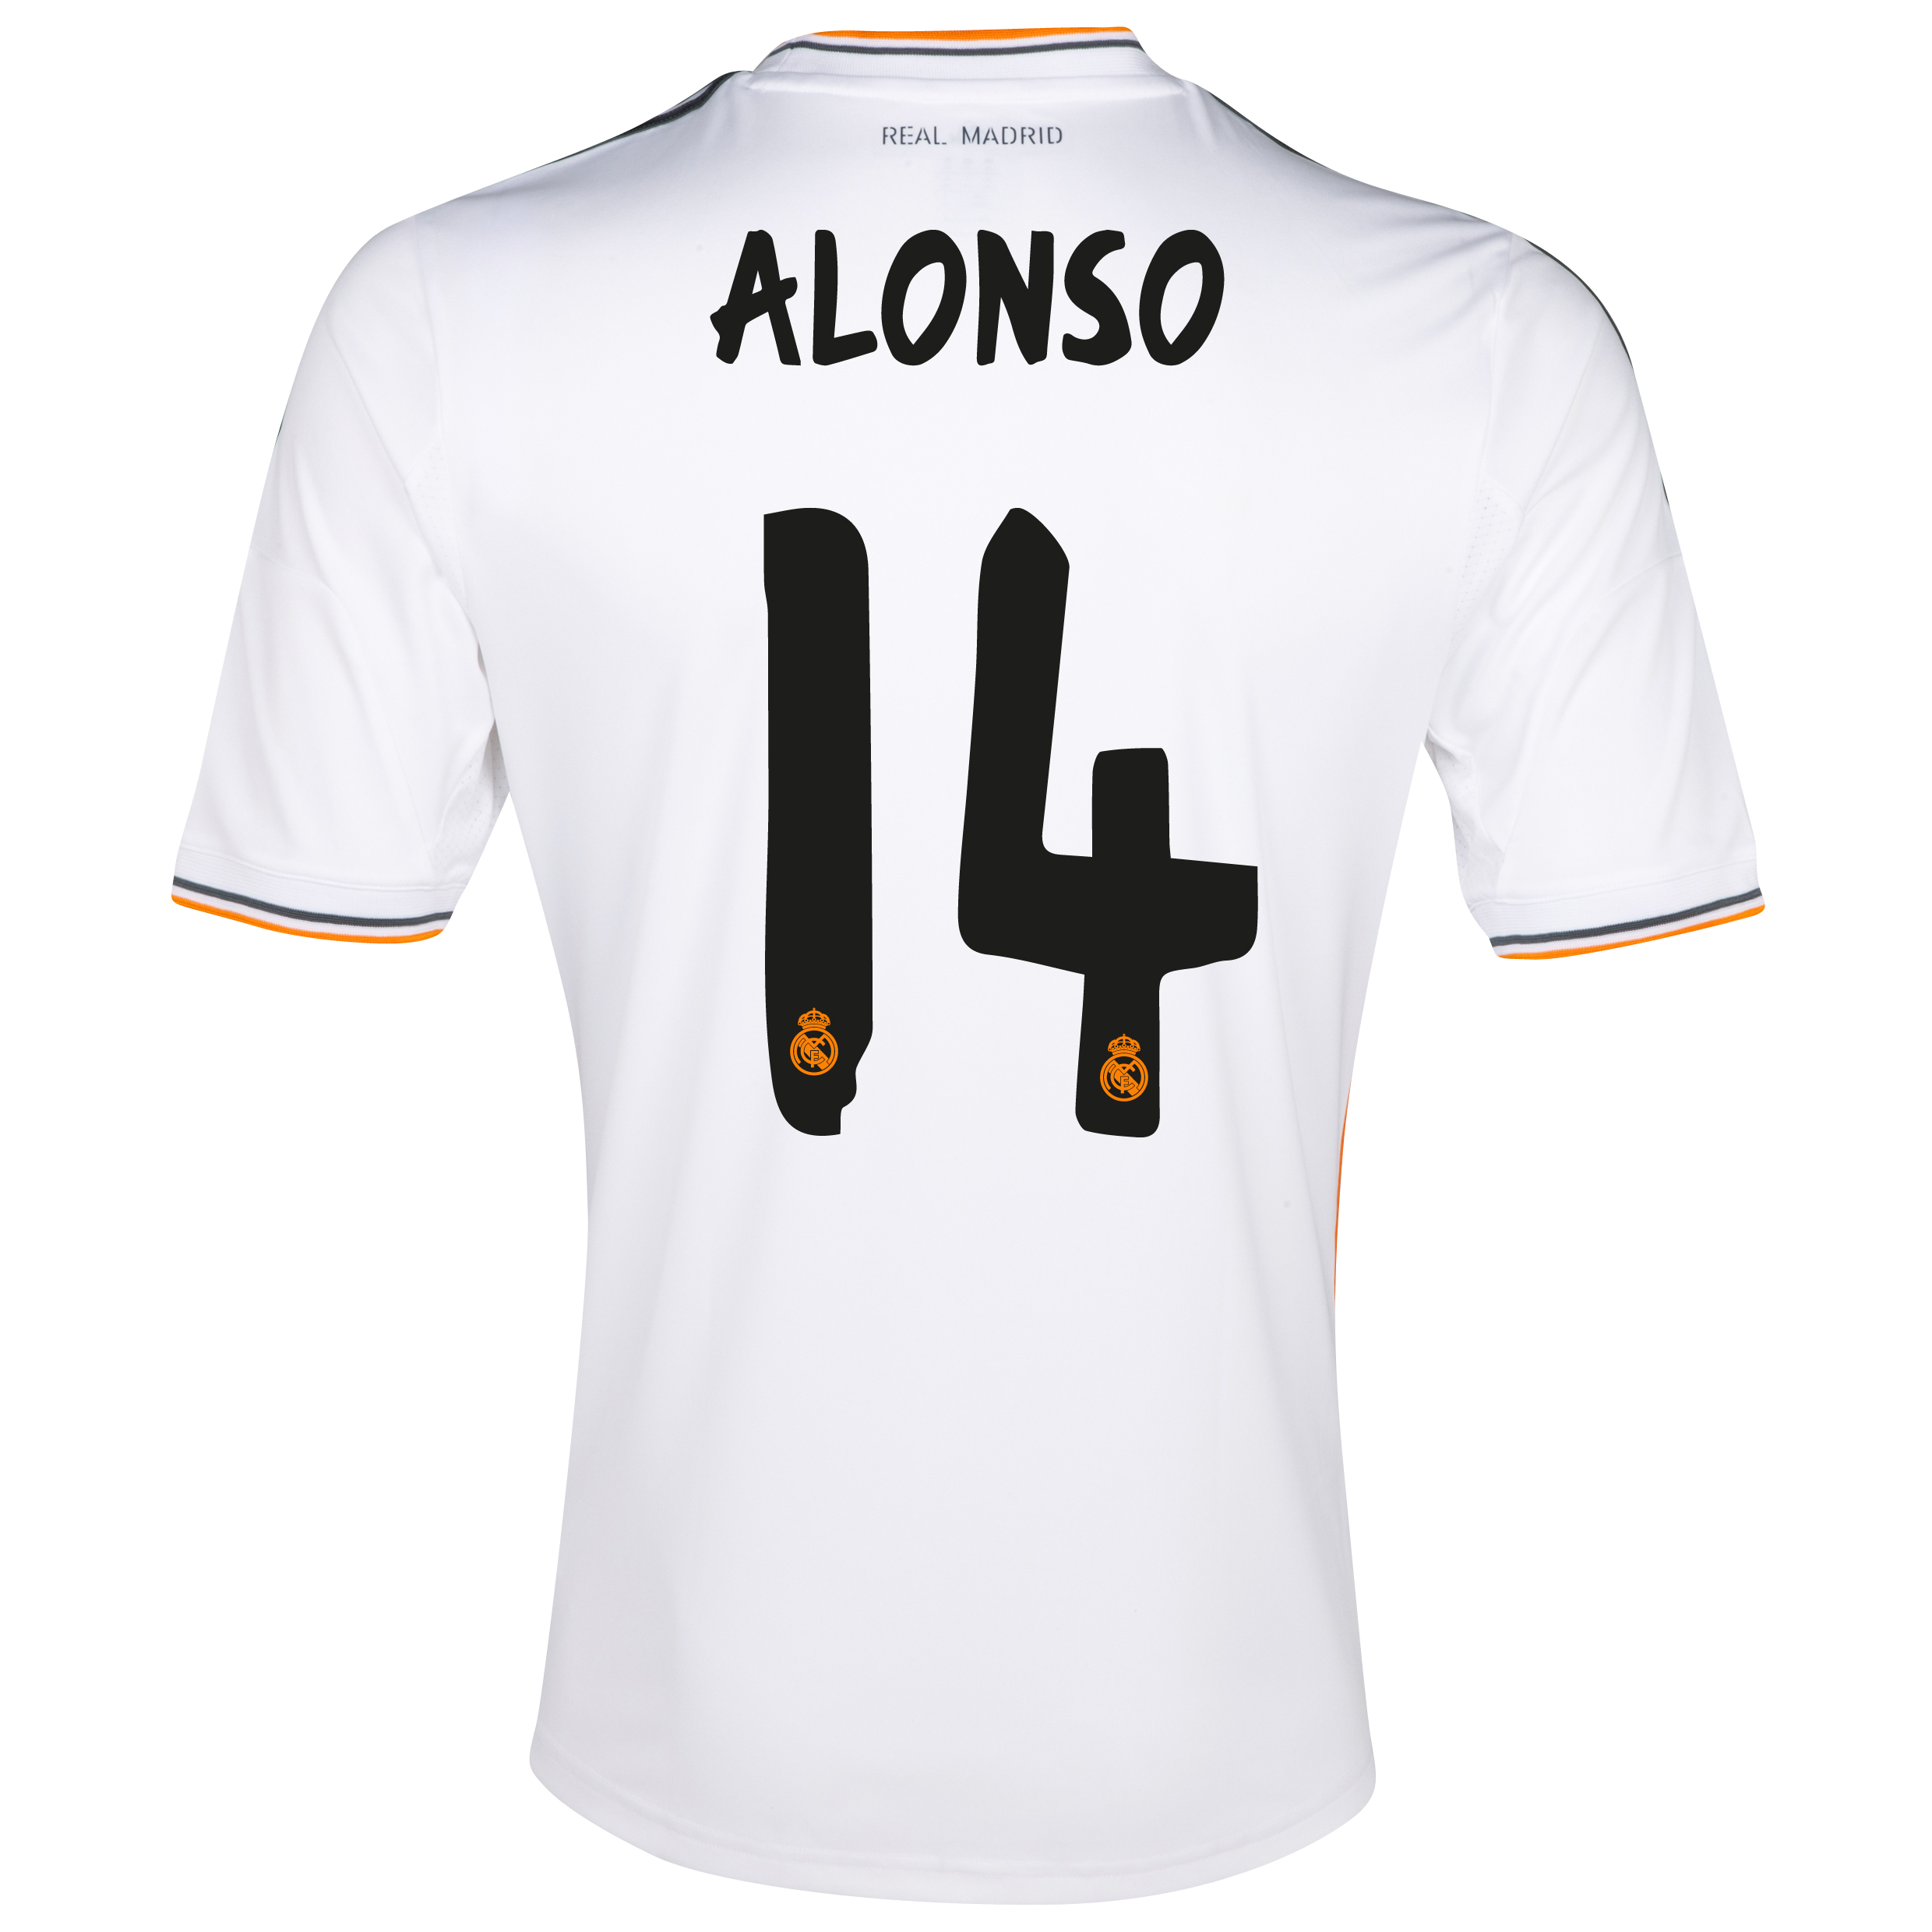 Real Madrid Home Shirt 2013/14 with Alonso 14 printing